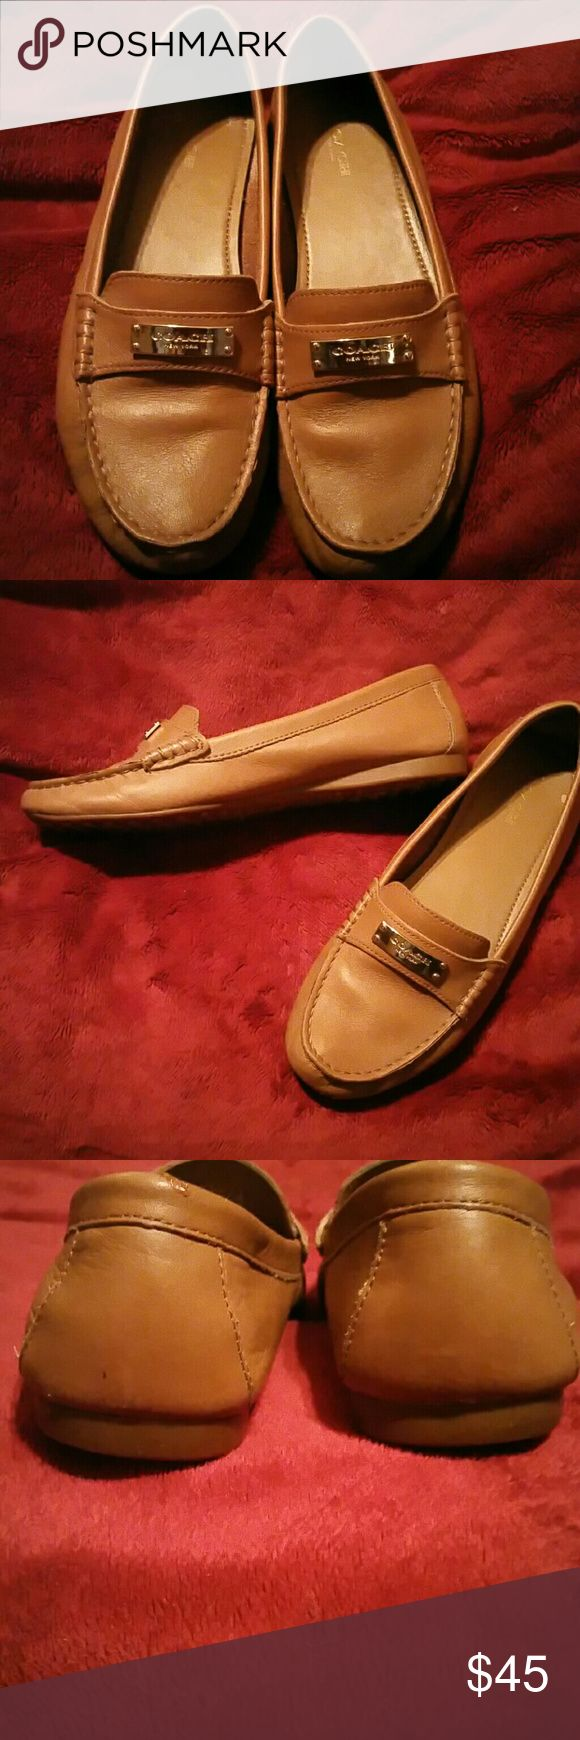 Coach tan loafers Coach tan loafers... real leather with gold trim in very good condition size eight and a half Coach Shoes Flats & Loafers